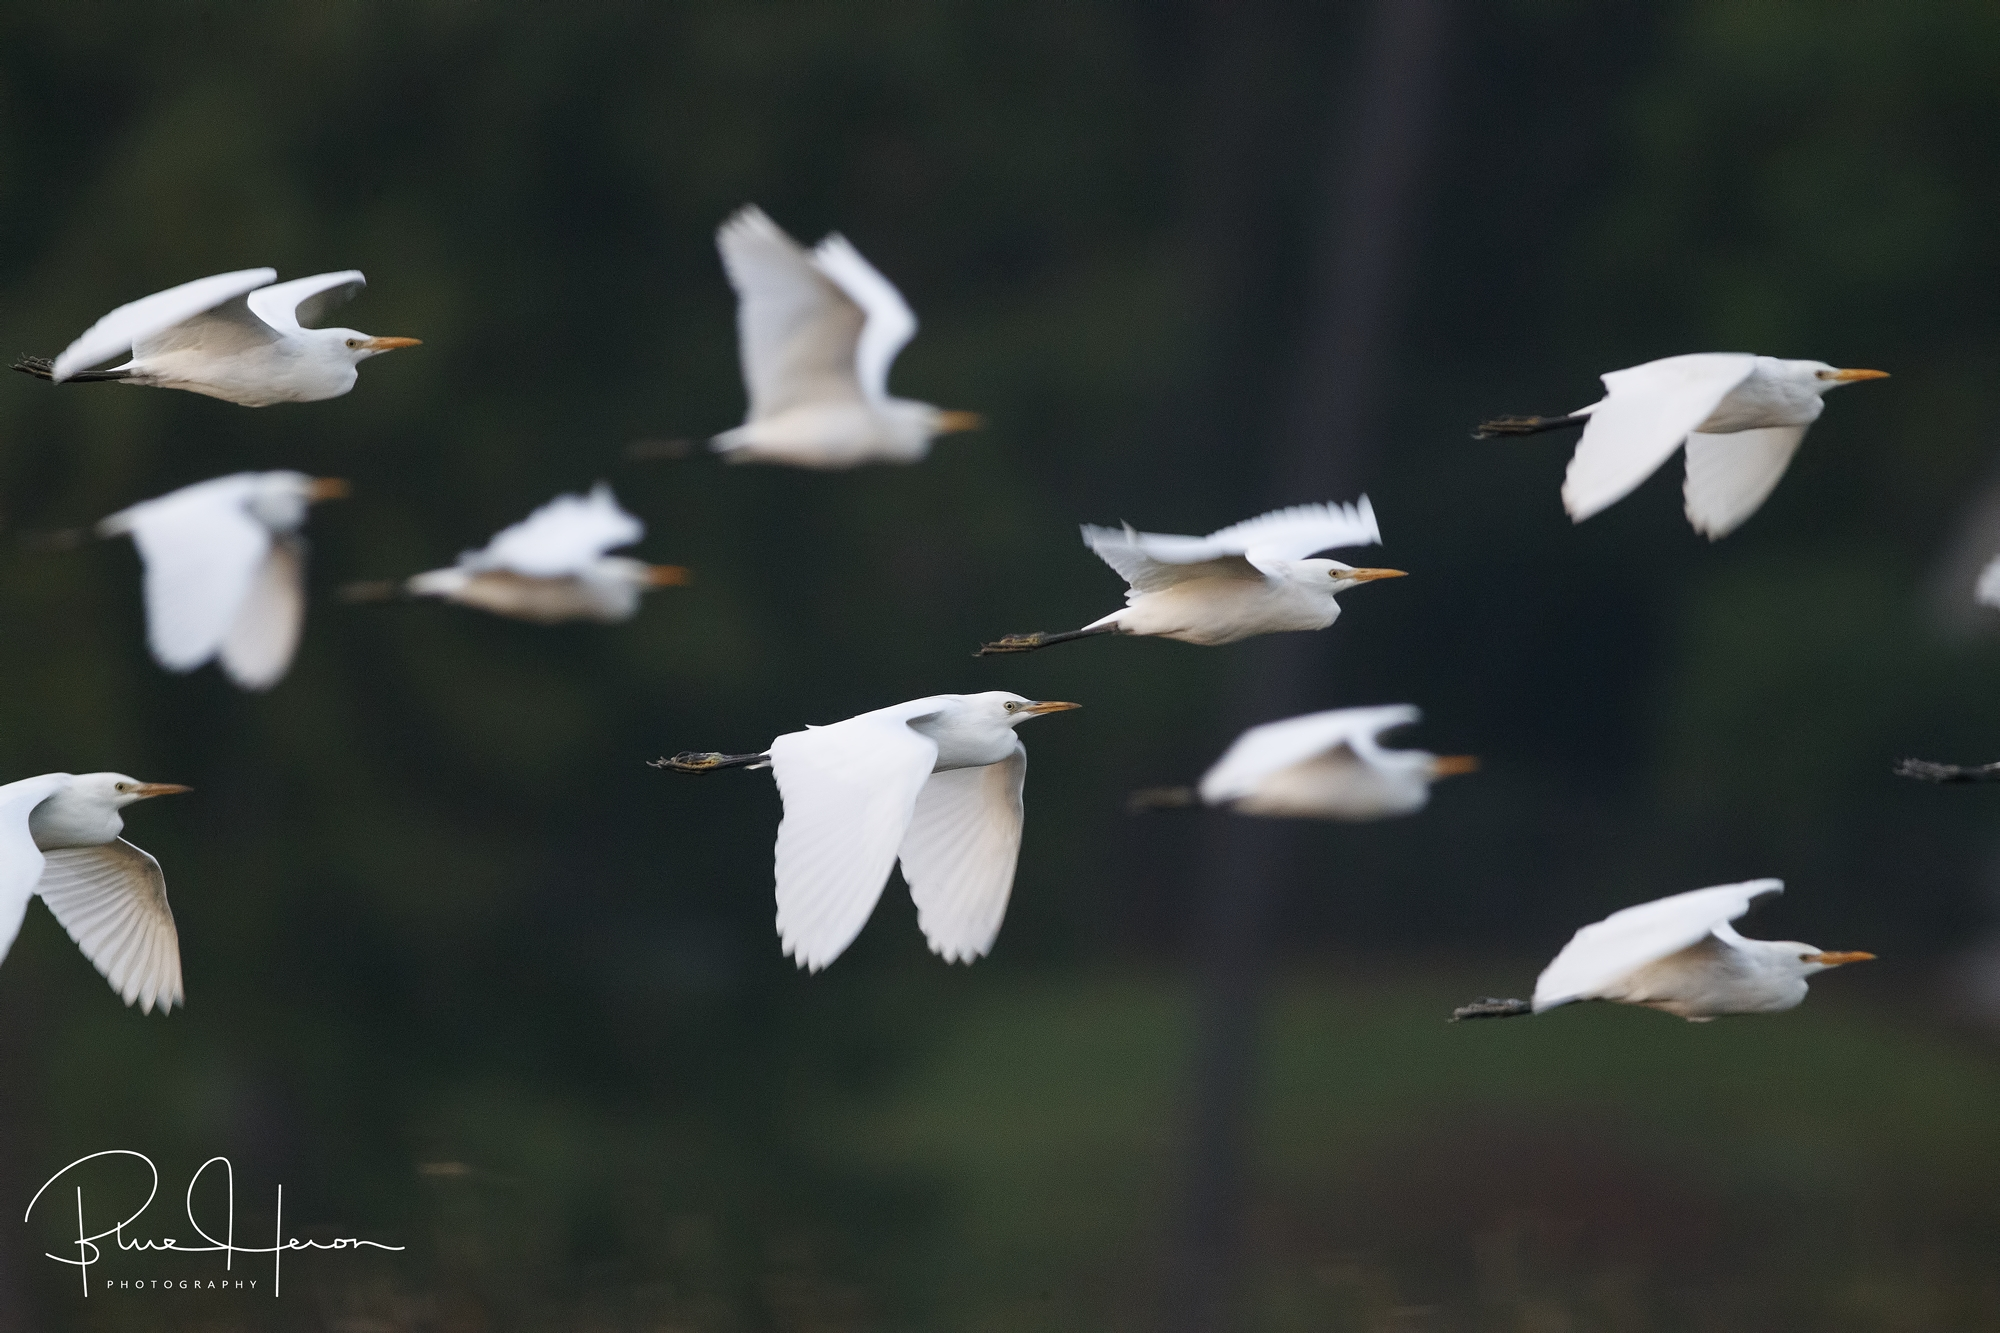 Blurry wingbeats of a flock of cattle egret in the pre-dawn light taken at 1/250th of a second